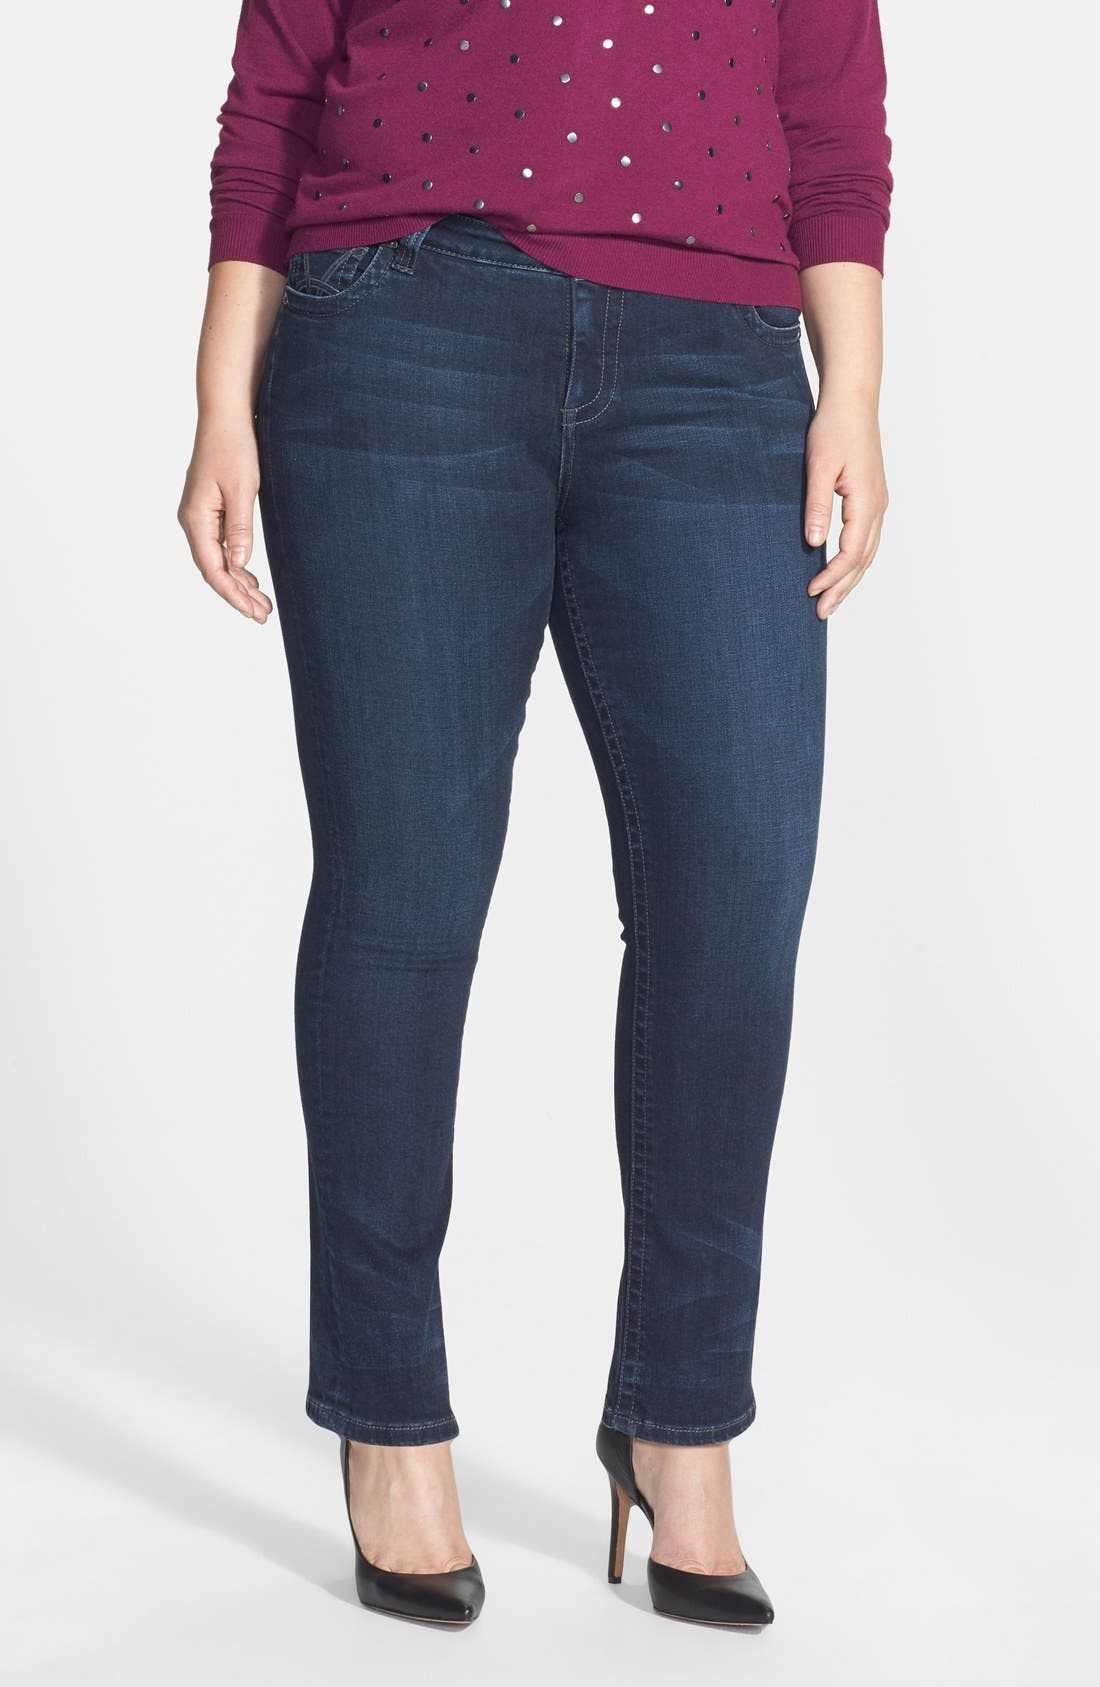 Alternate Image 1 Selected - KUT from the Kloth 'Stevie' Straight Leg Jeans (Progressive) (Plus Size) (Online Only)